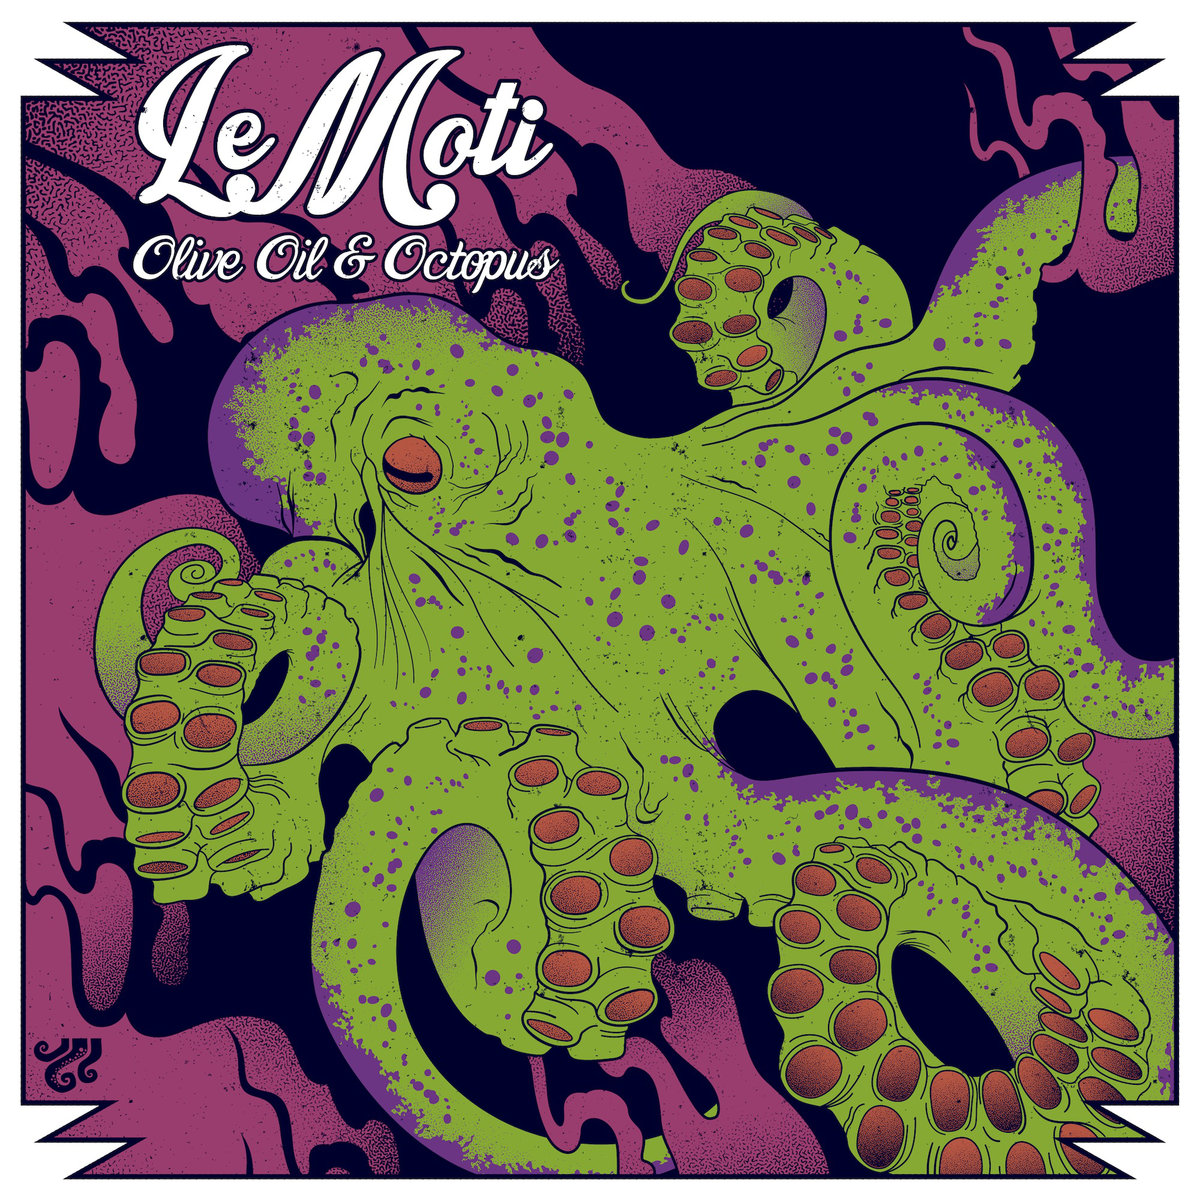 LeMoti - 107th Part Deux @ 'Olive Oil & Octopus' album (Austin)